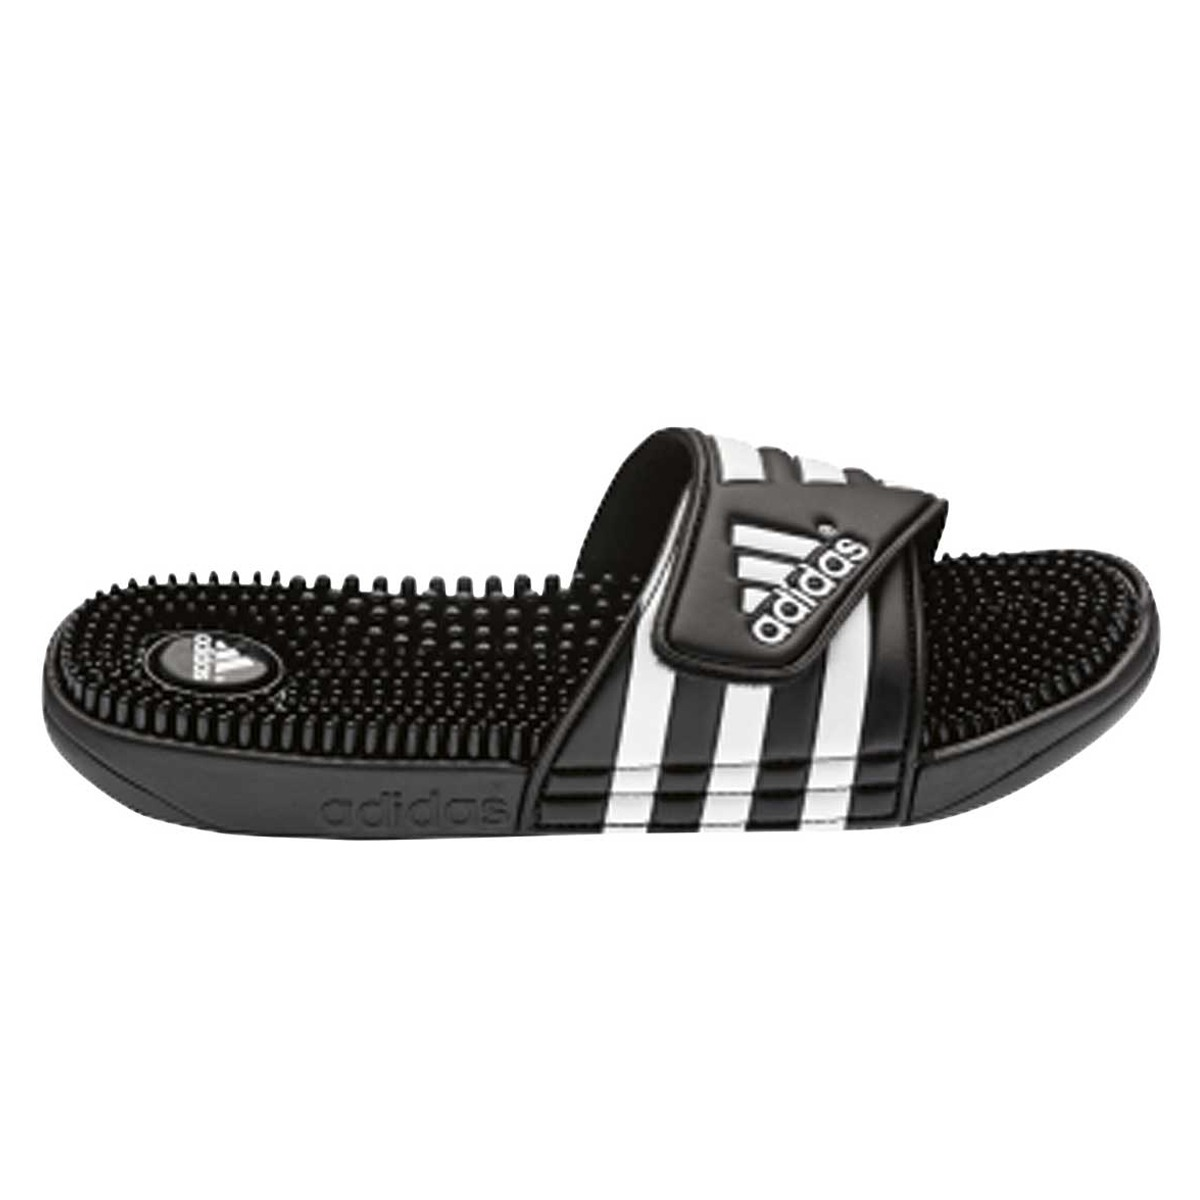 8fca63c35486 Adidas Slides   Buy cheap Adidas shoes online - Clvyall.com